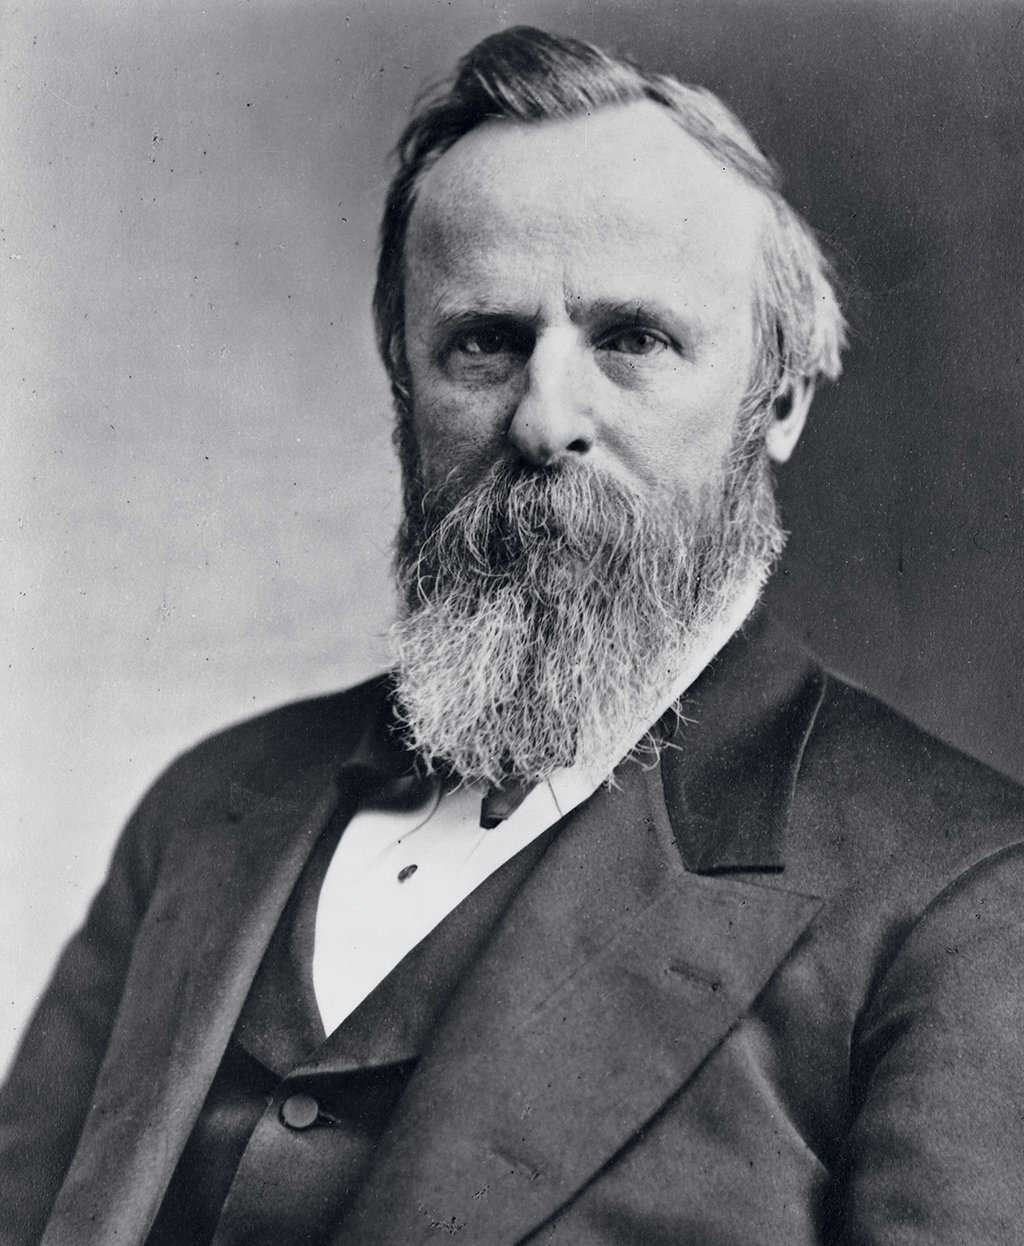 Photograph courtesy of the Library of Congress.